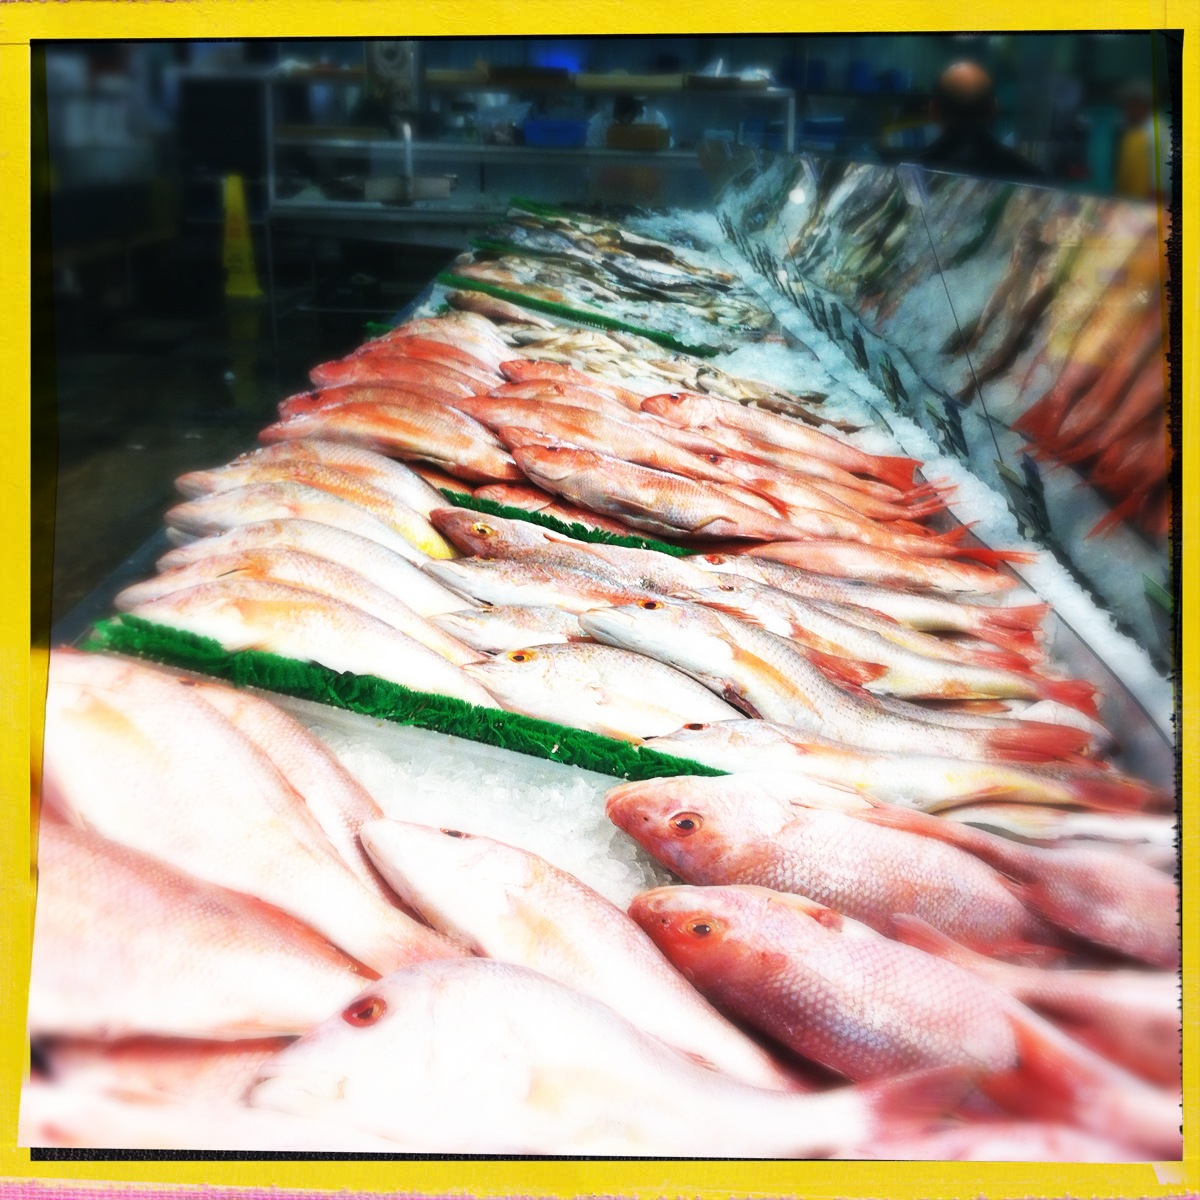 10 reasons to visit buford highway farmers market that don for Sushi grade fish market